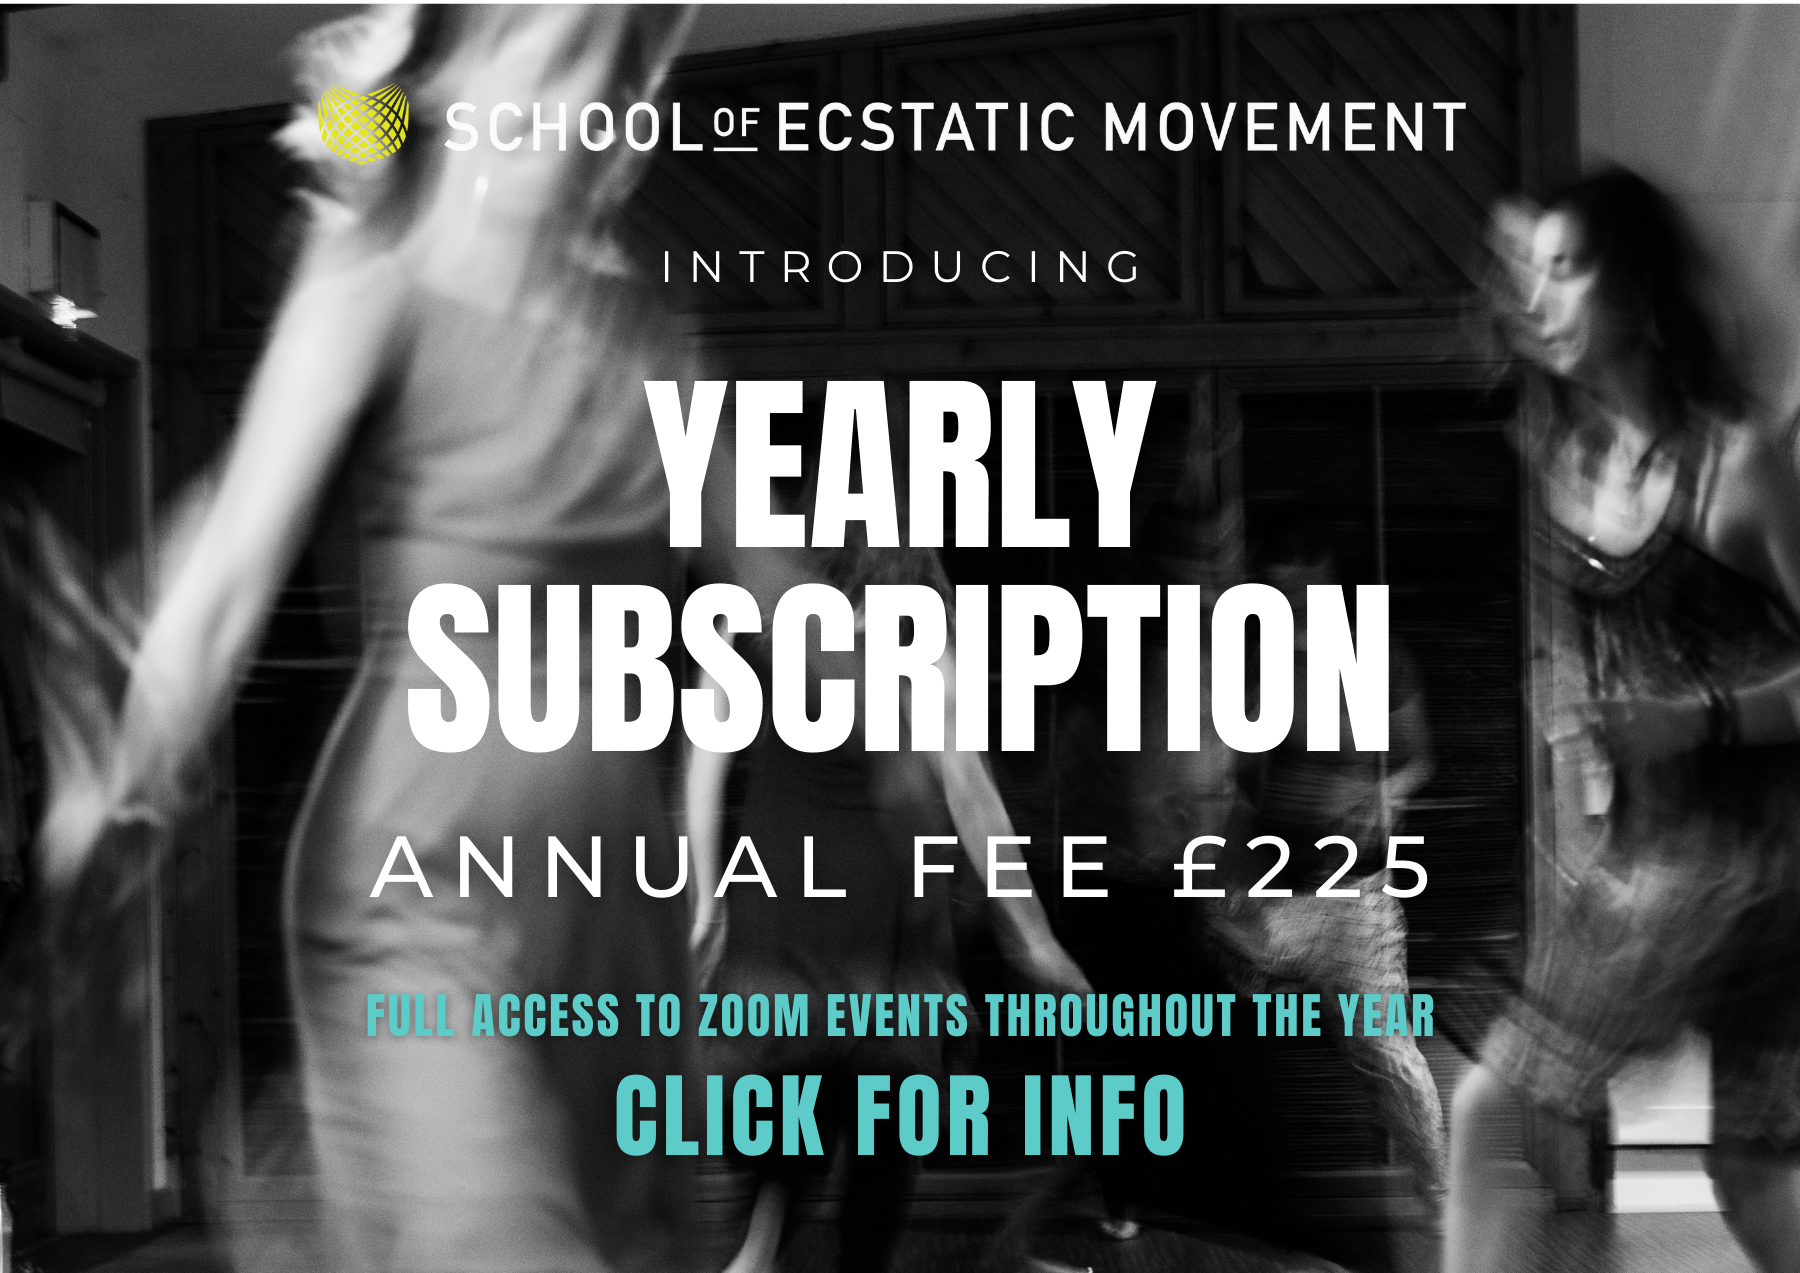 click for info on yearly subscription £225